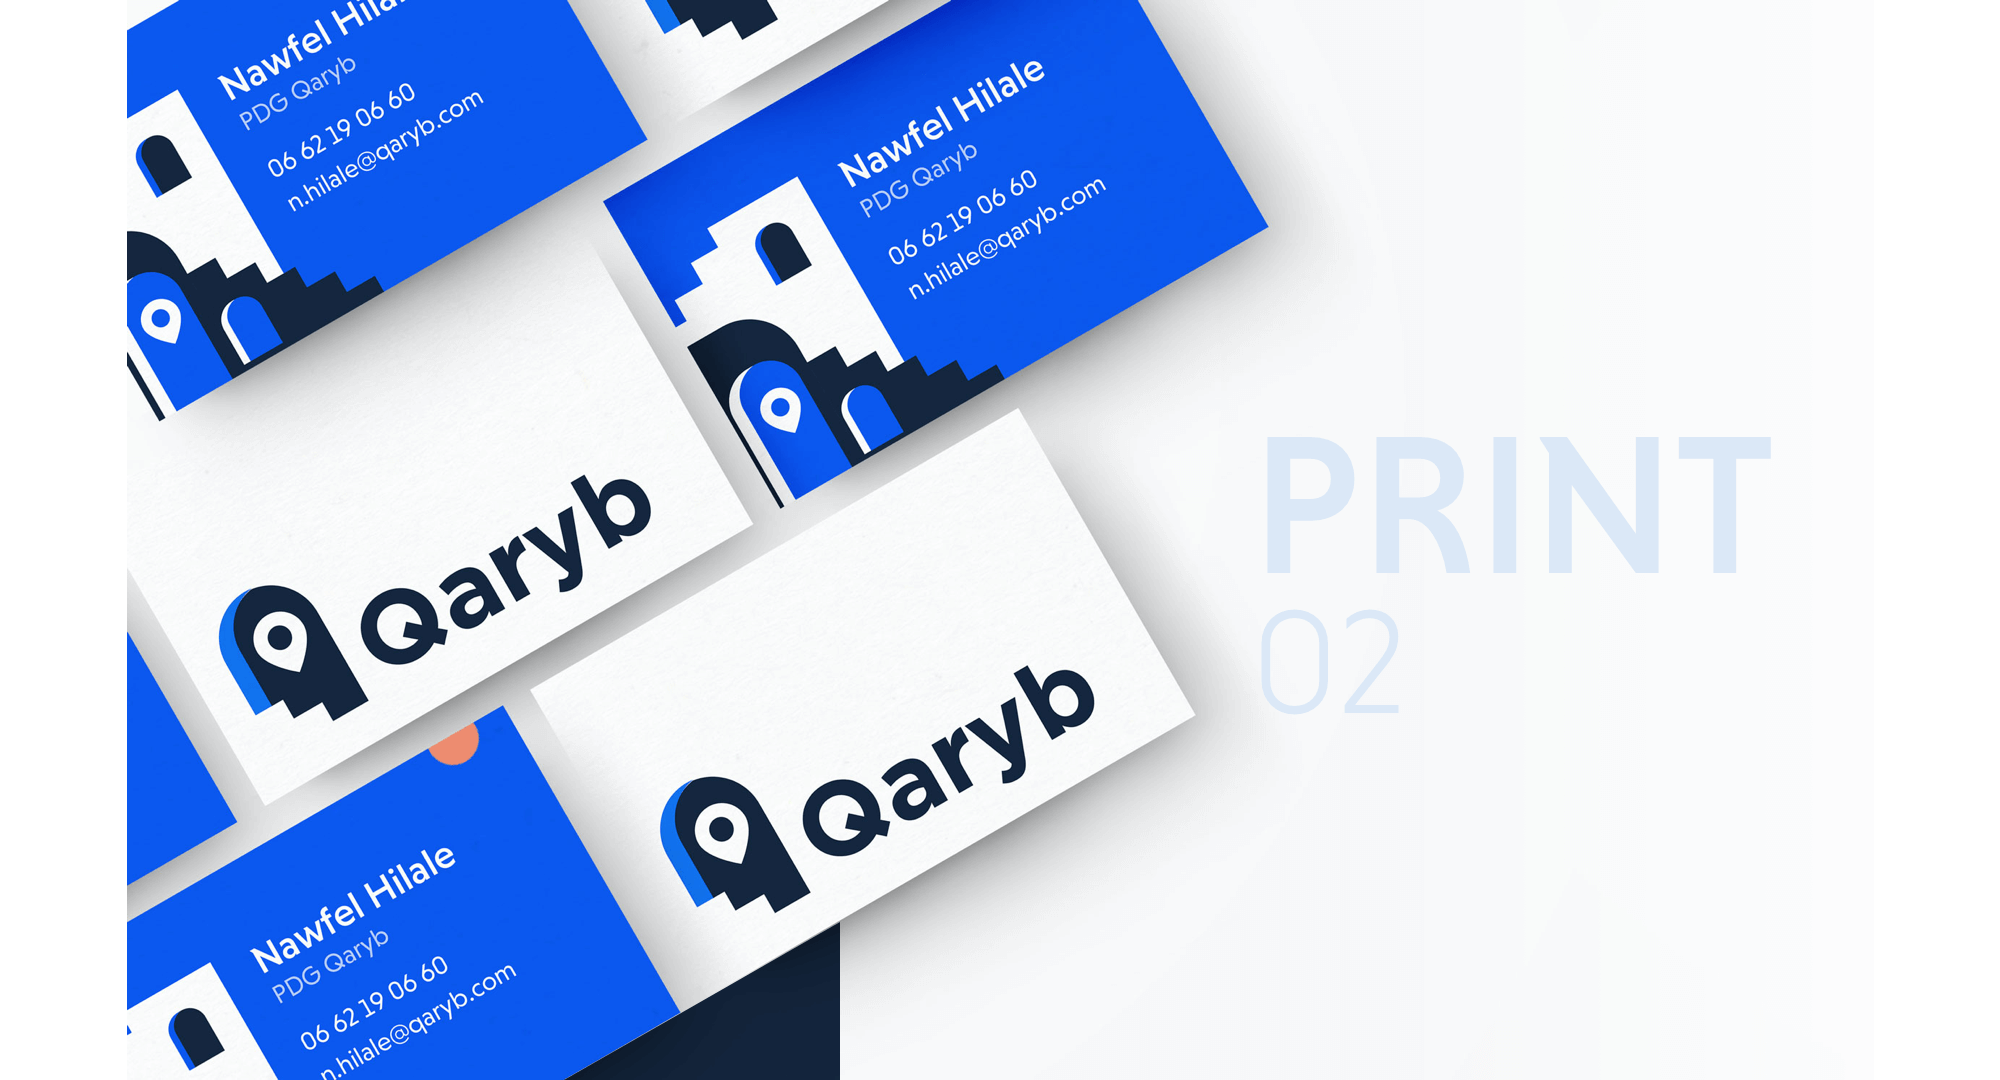 qaryb-branding-logo-app-ux-ui-icon-illustration-02